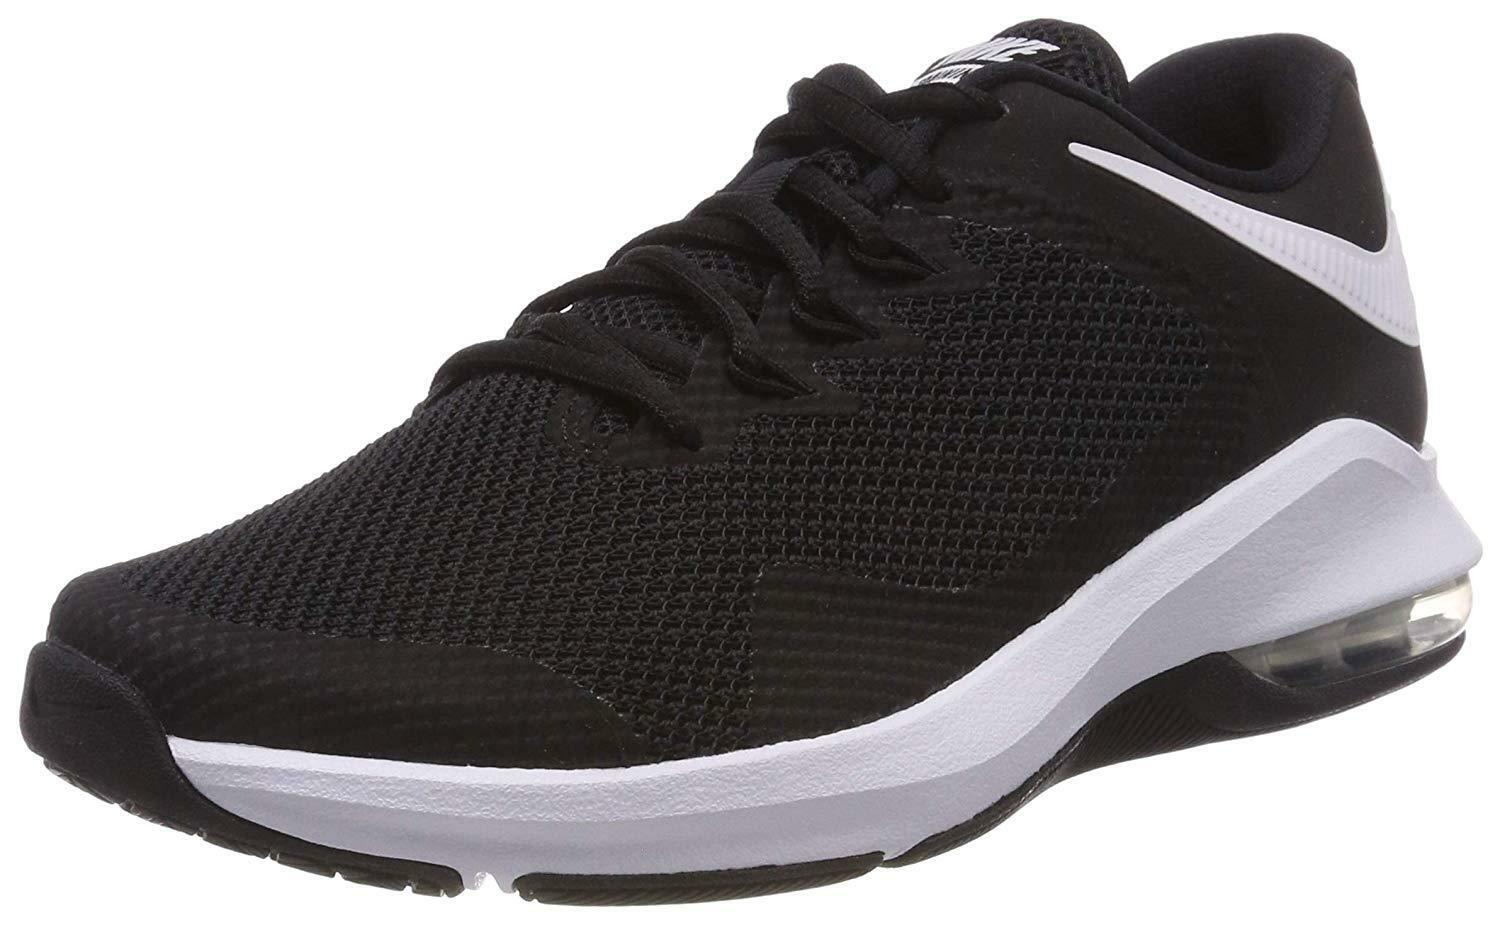 dab1c84129 Nike AIR MAX ALPHA TRAINER Mens Black White AA7060-001 Casual shoes ...